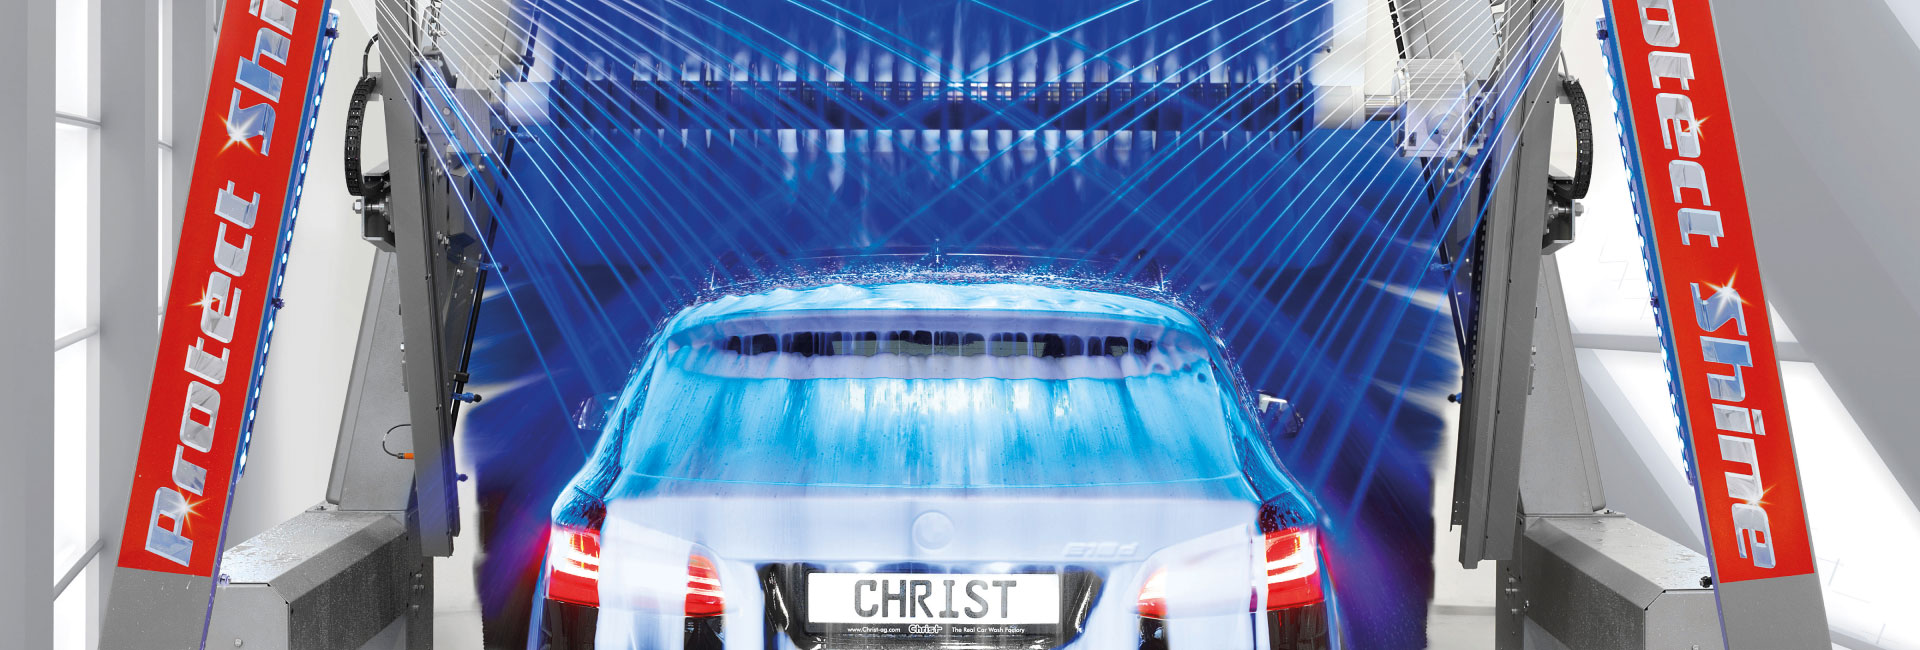 Christ Car Wash Systems Price